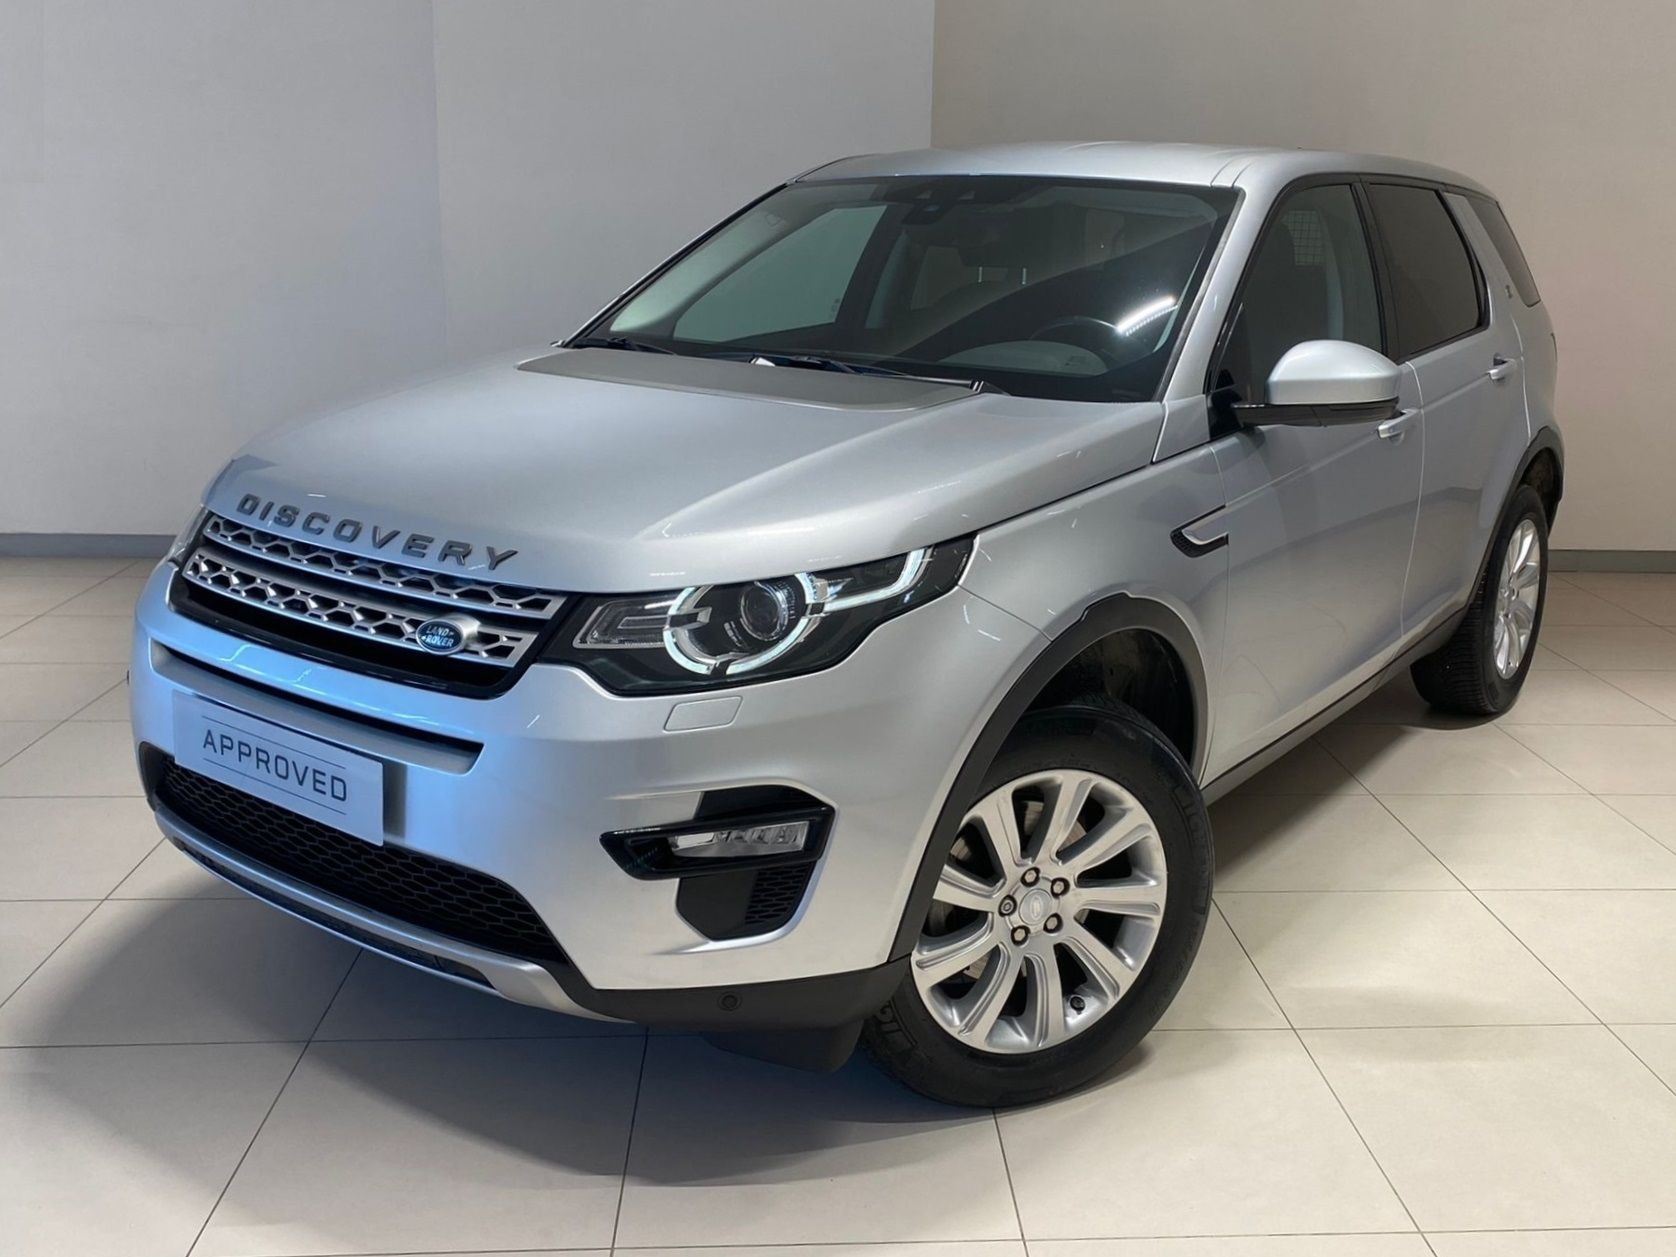 Land Rover Discovery Sport 2.0 TD4 150 CV HSE *AUTOCARRO*